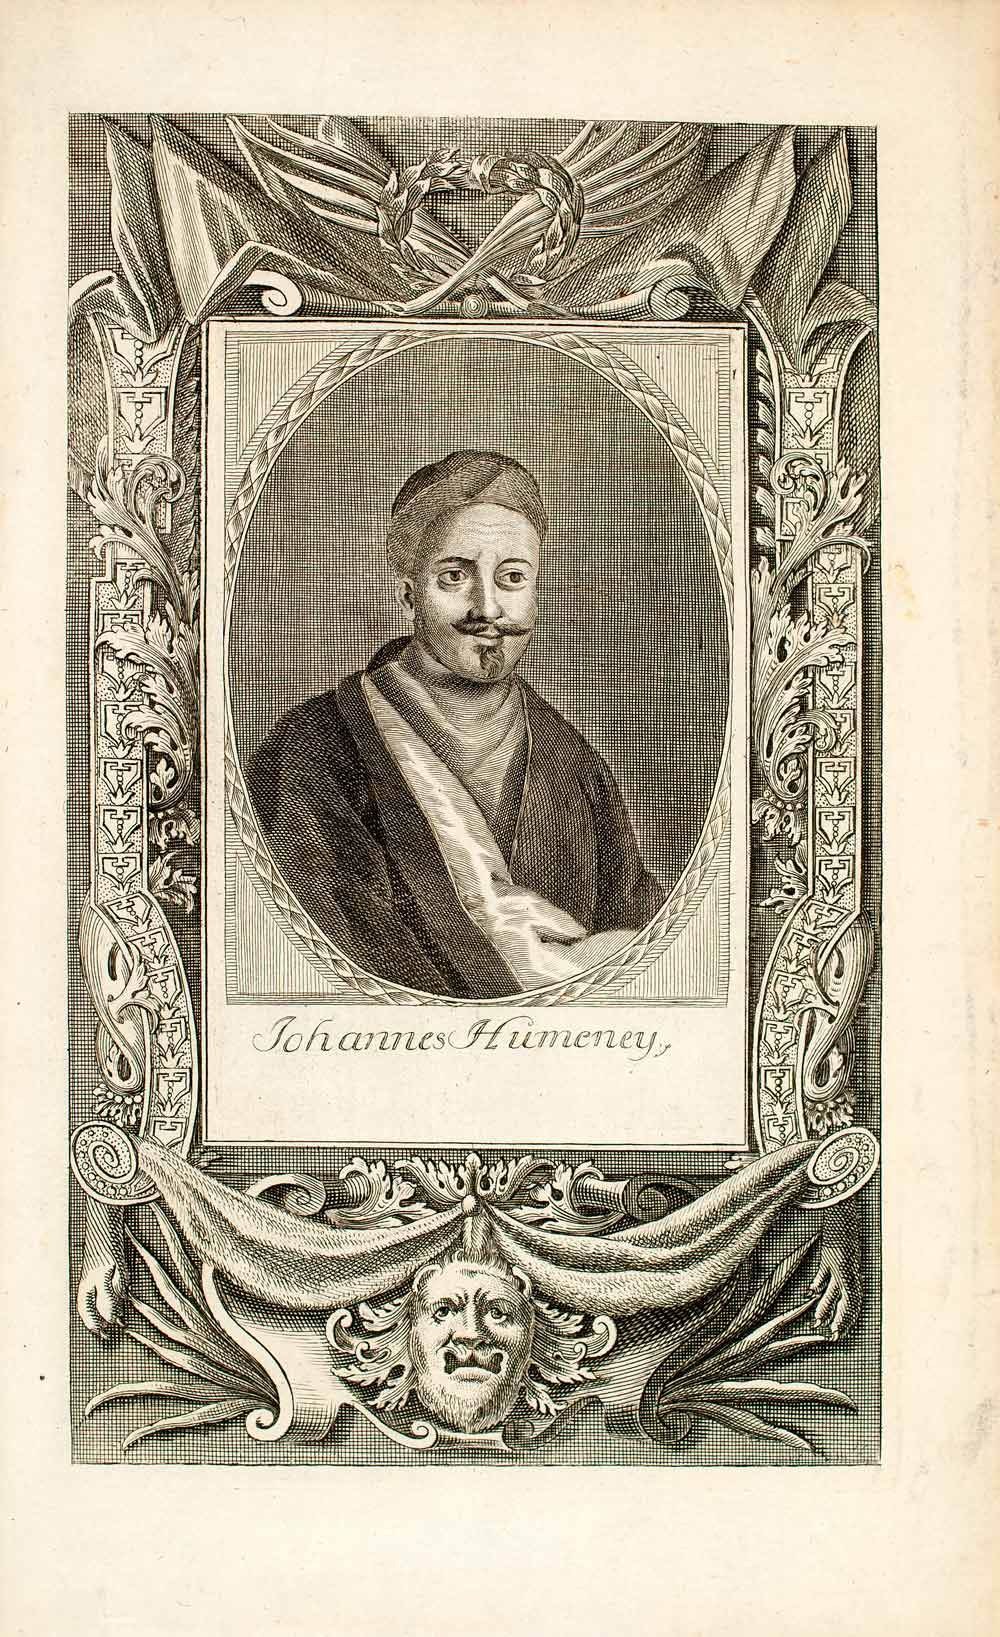 1722 Copper Engraving Portrait Johannes Humeney Hommonai Habsburg Empire EUM5